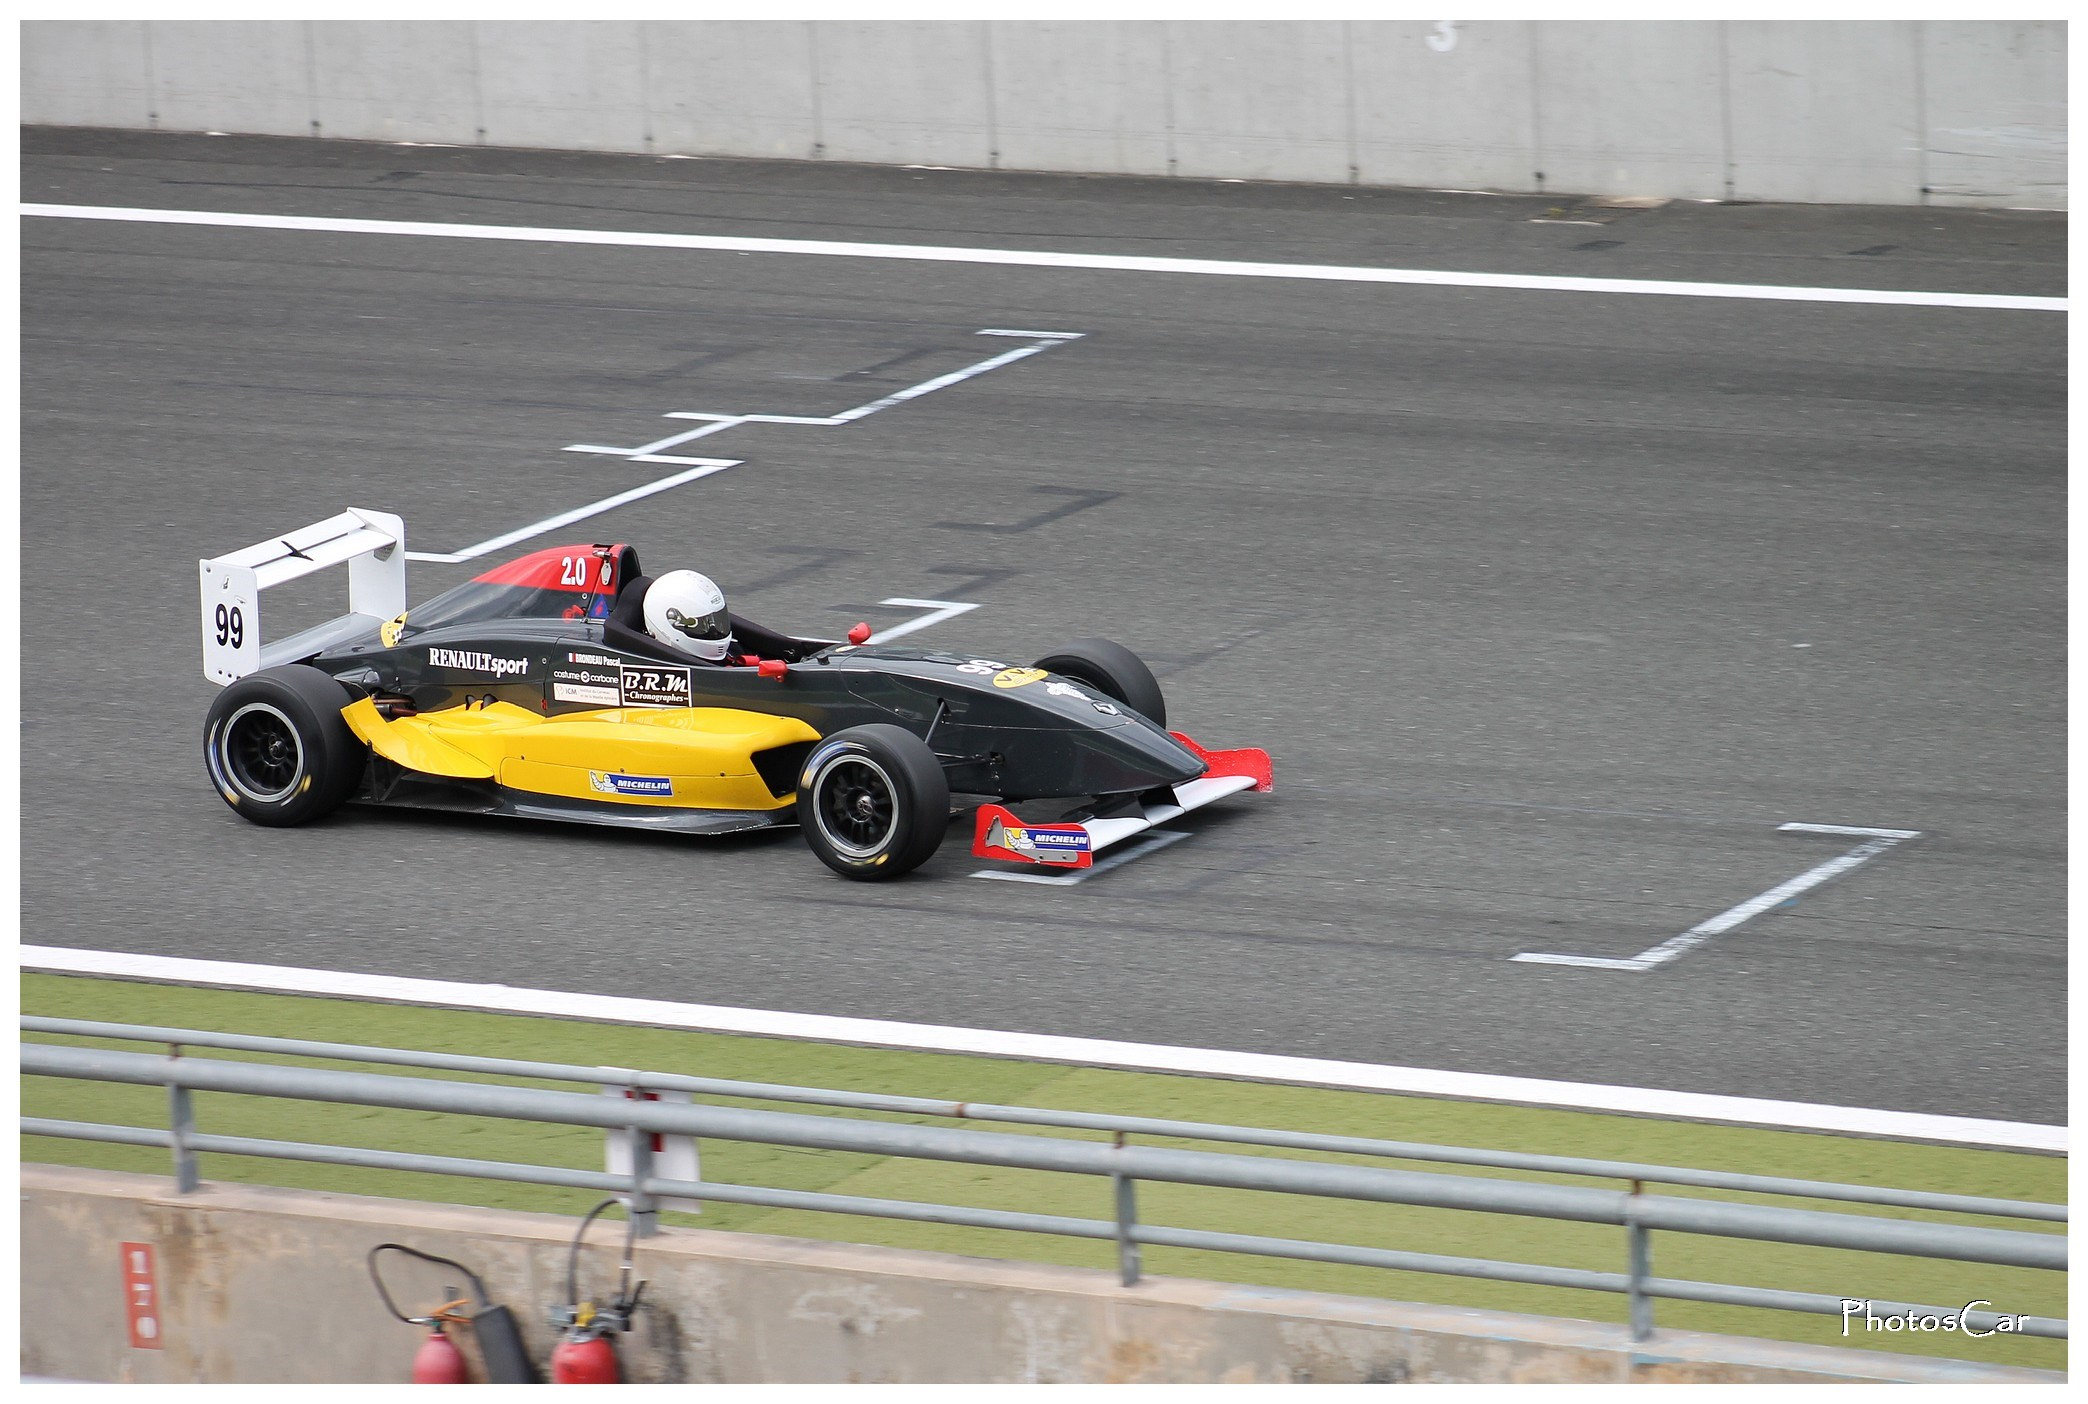 VdeV Magny Cours 2016